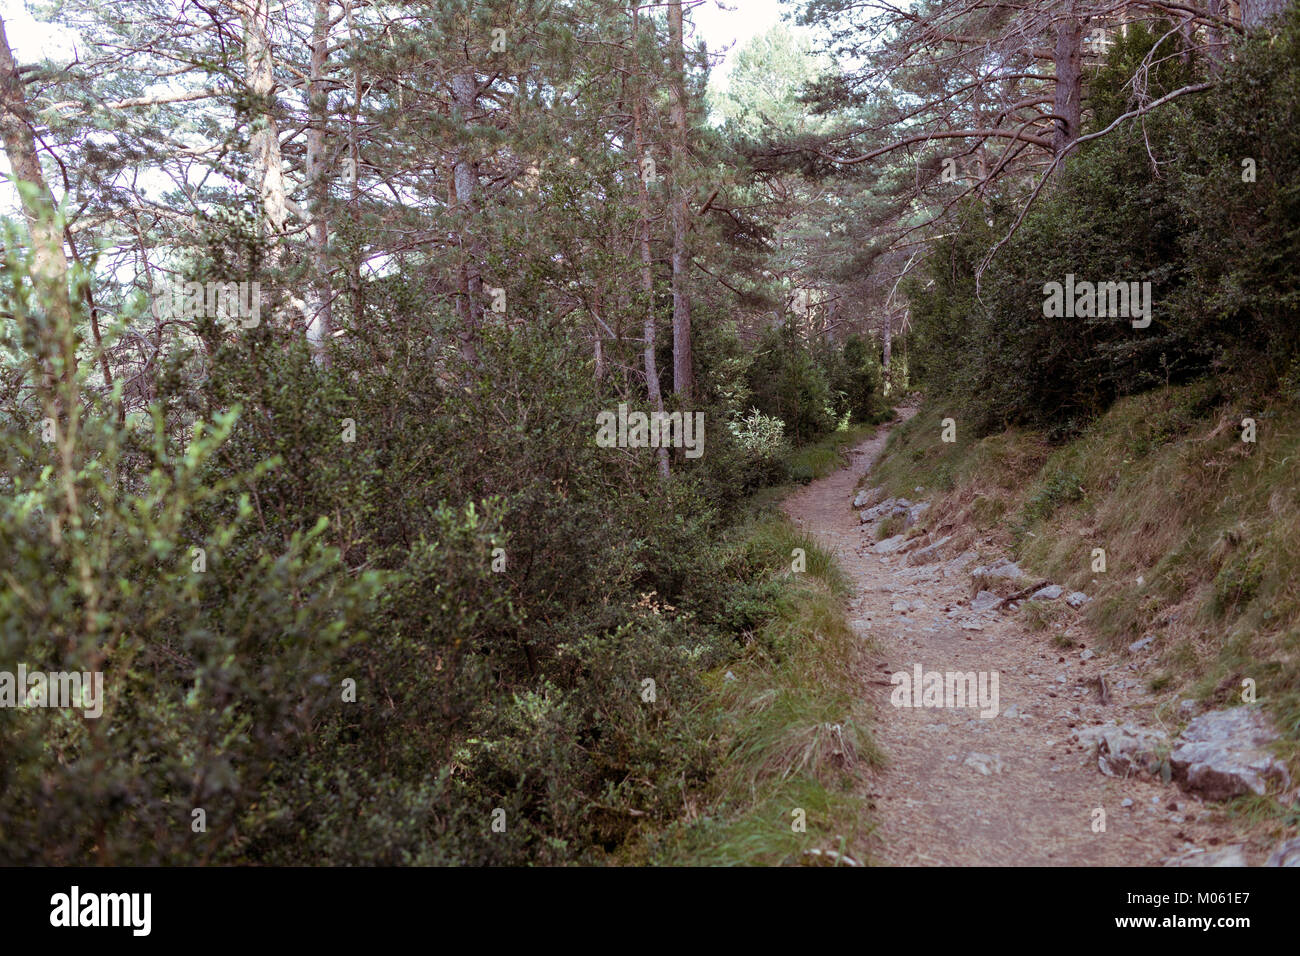 Narrow path going through forest on sunny day. Stock Photo